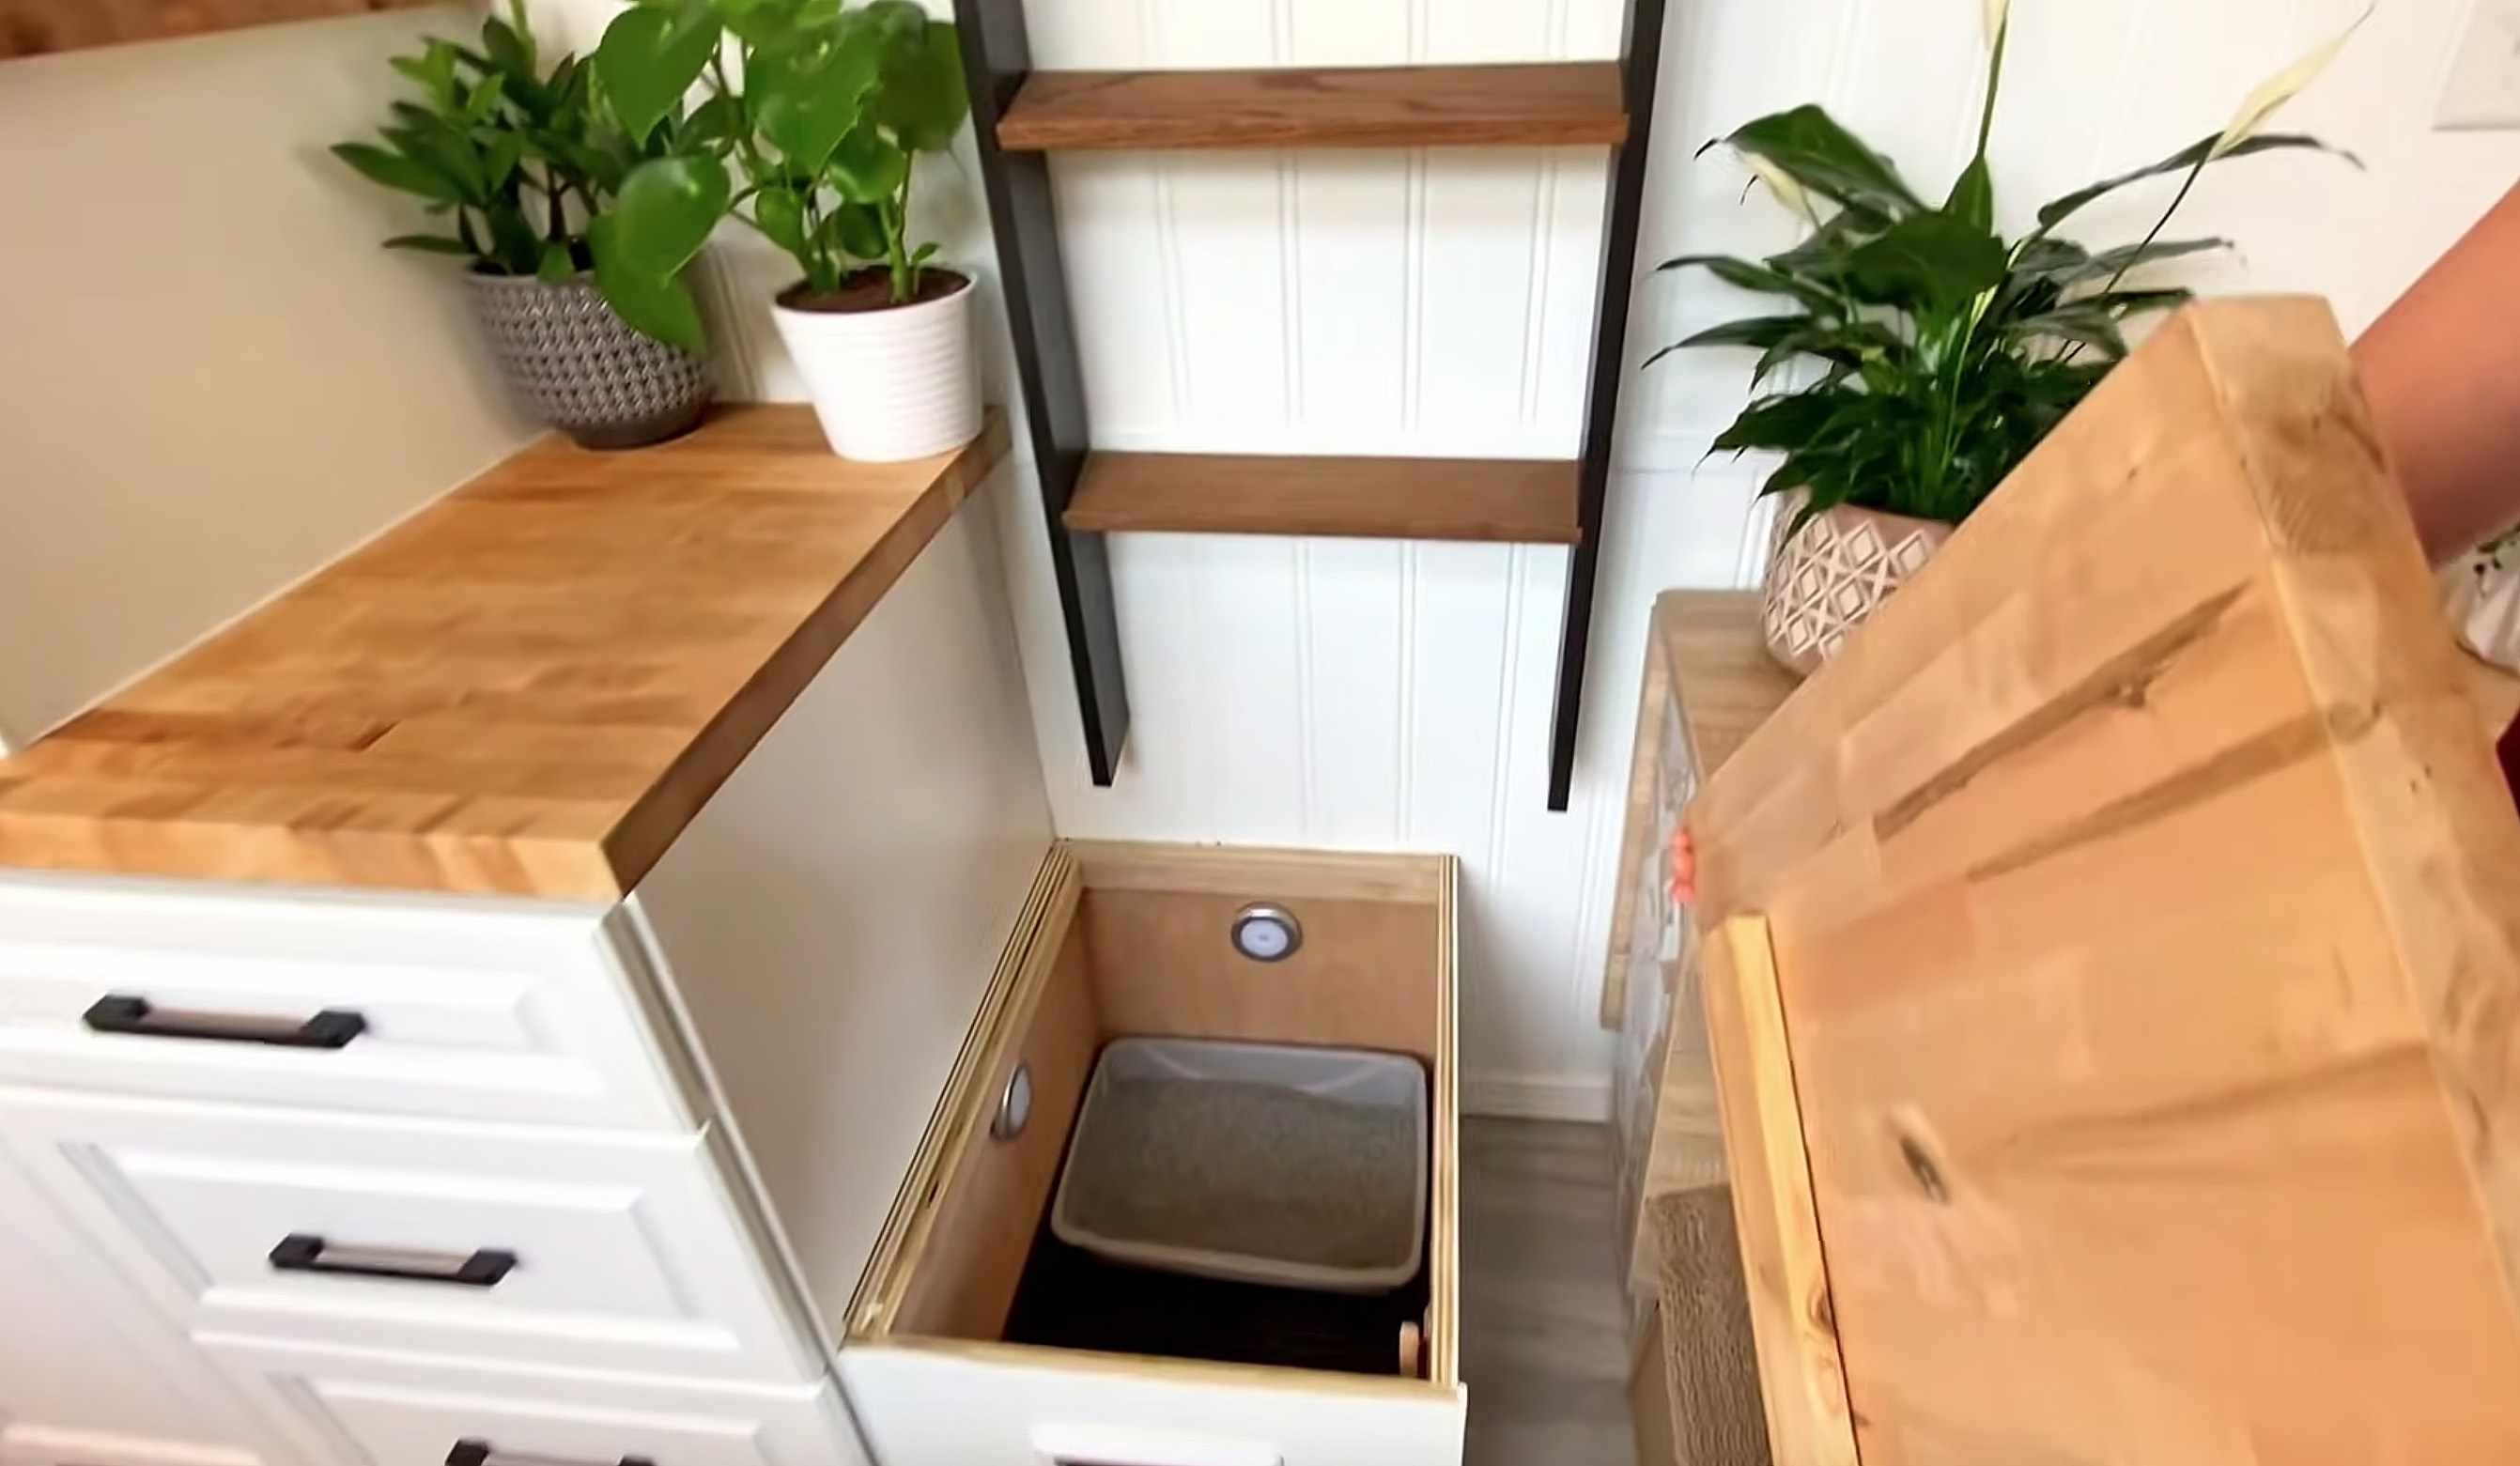 tiny house Rebekah teenytiny7 litter box in stairs